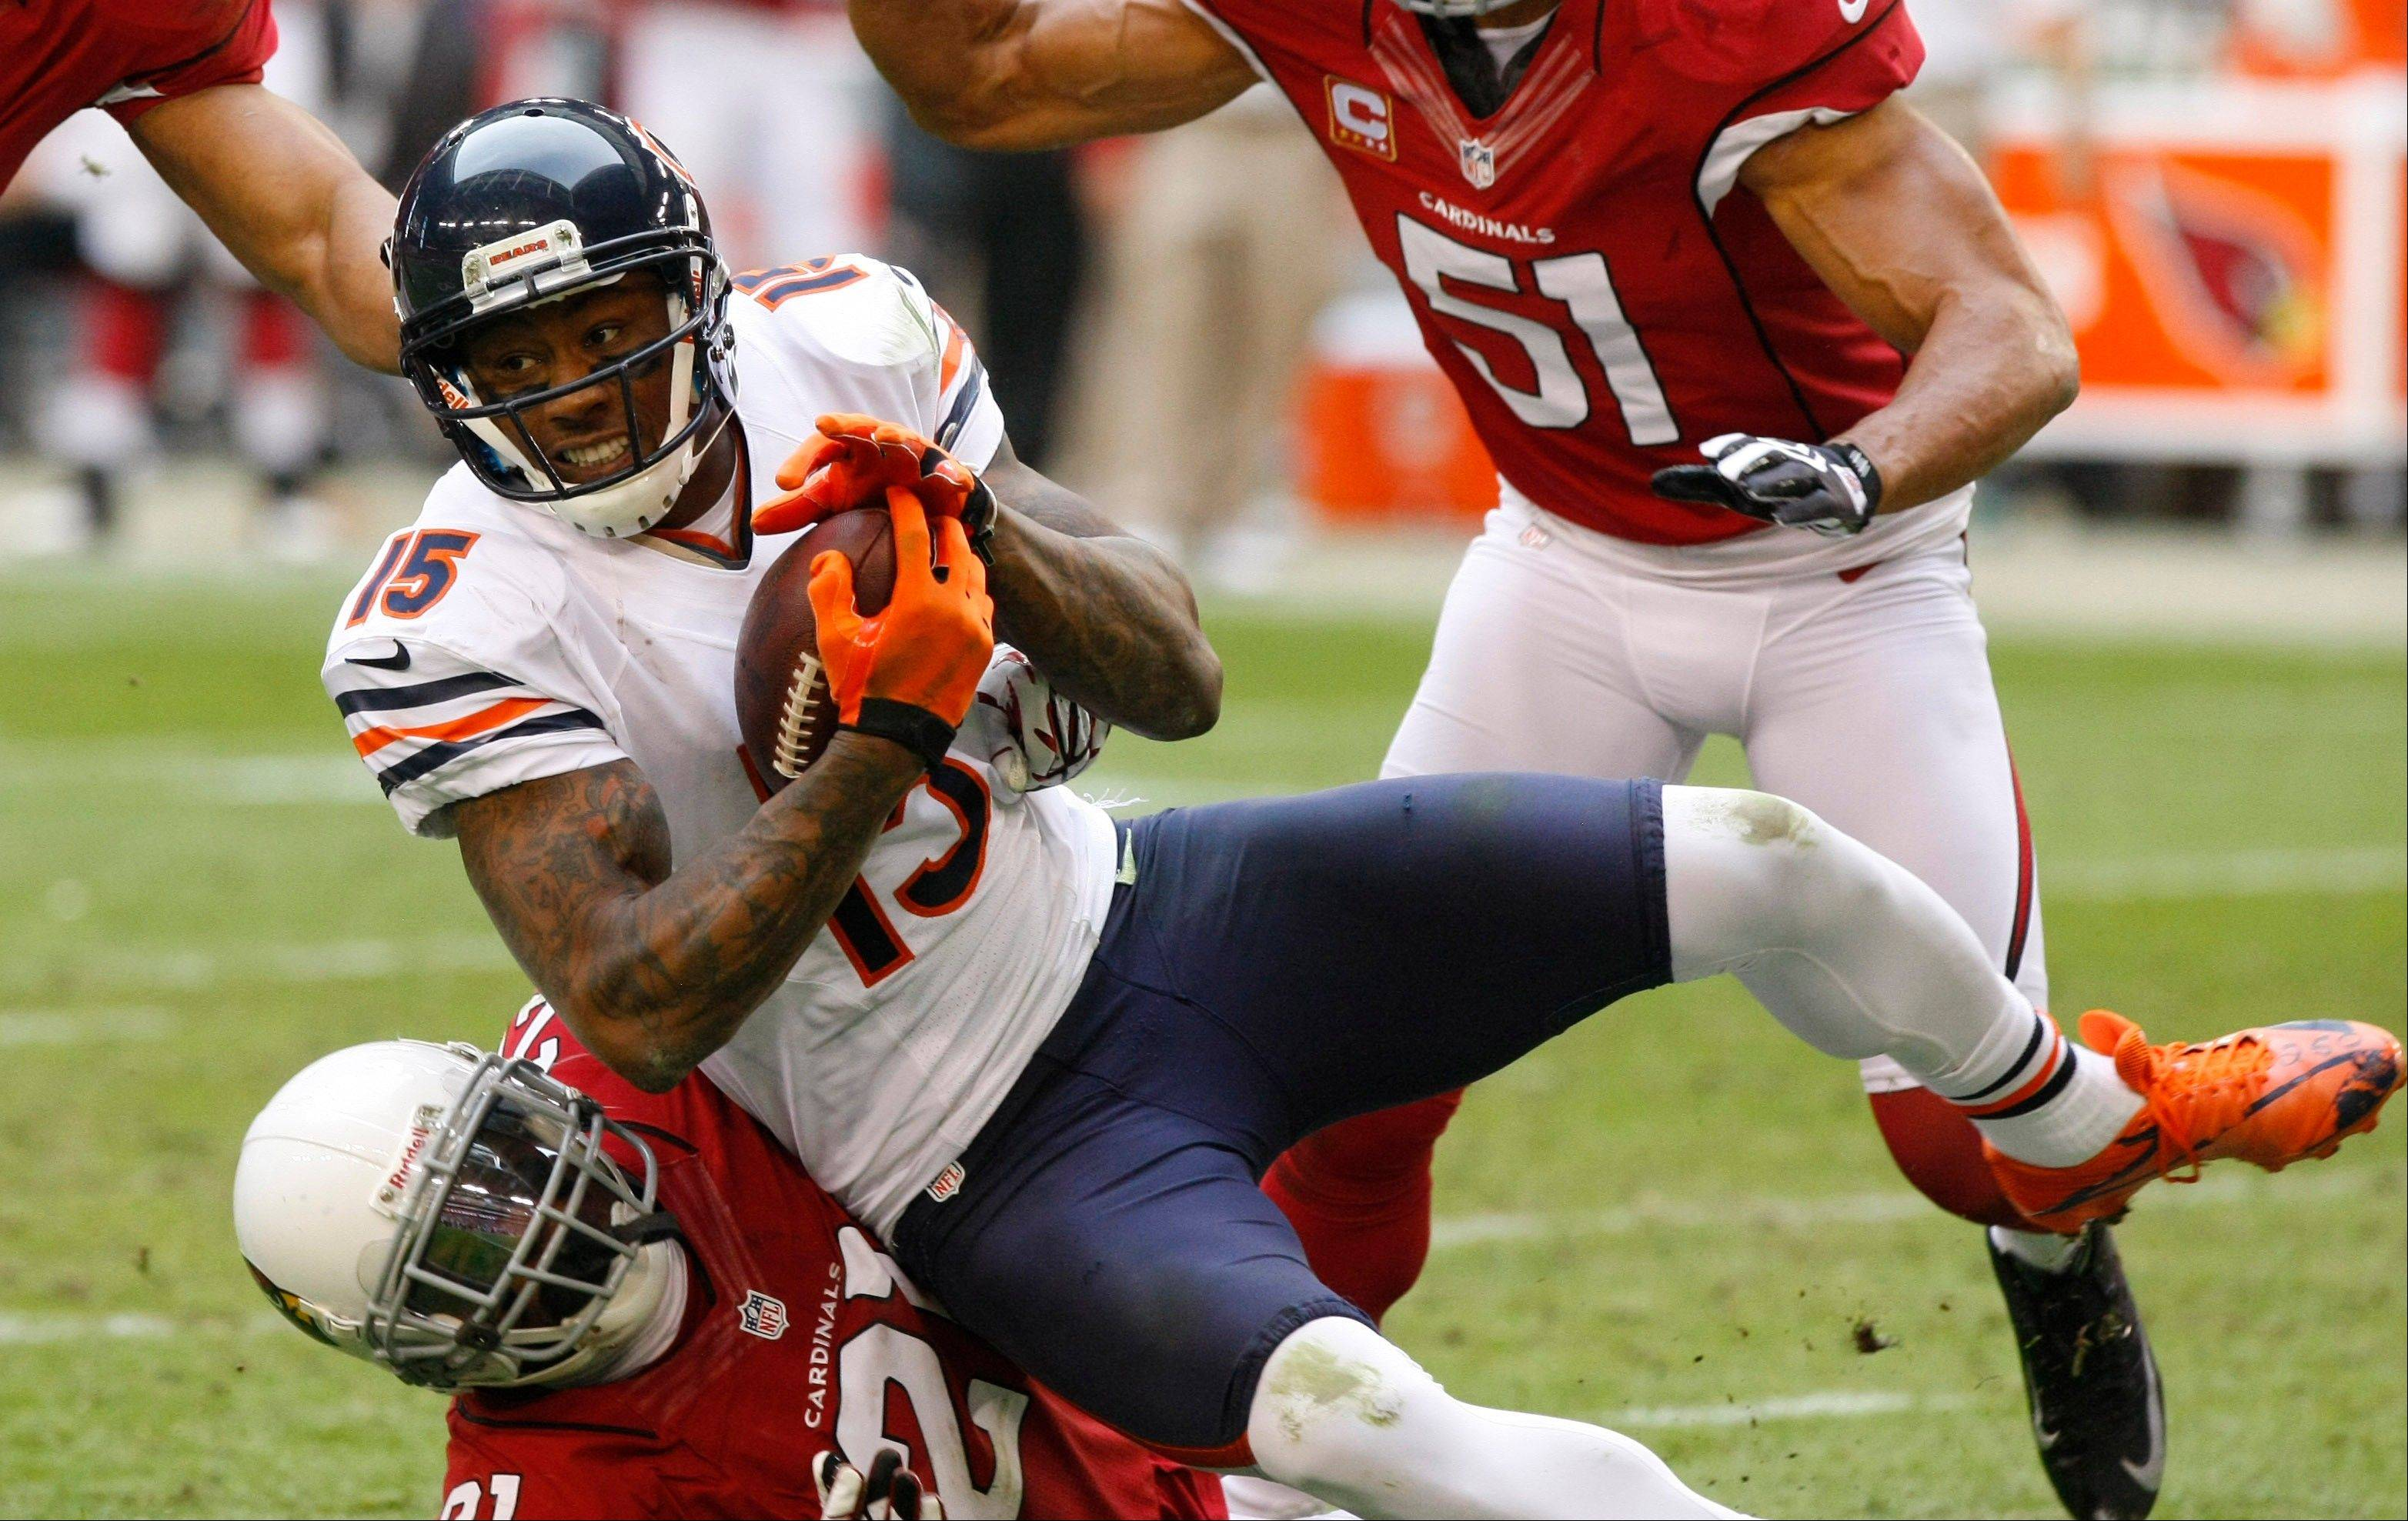 Bears wide receiver Brandon Marshall finished with 6 catches for 68 yards in Sunday�s victory, but he was less than happy with his performance.